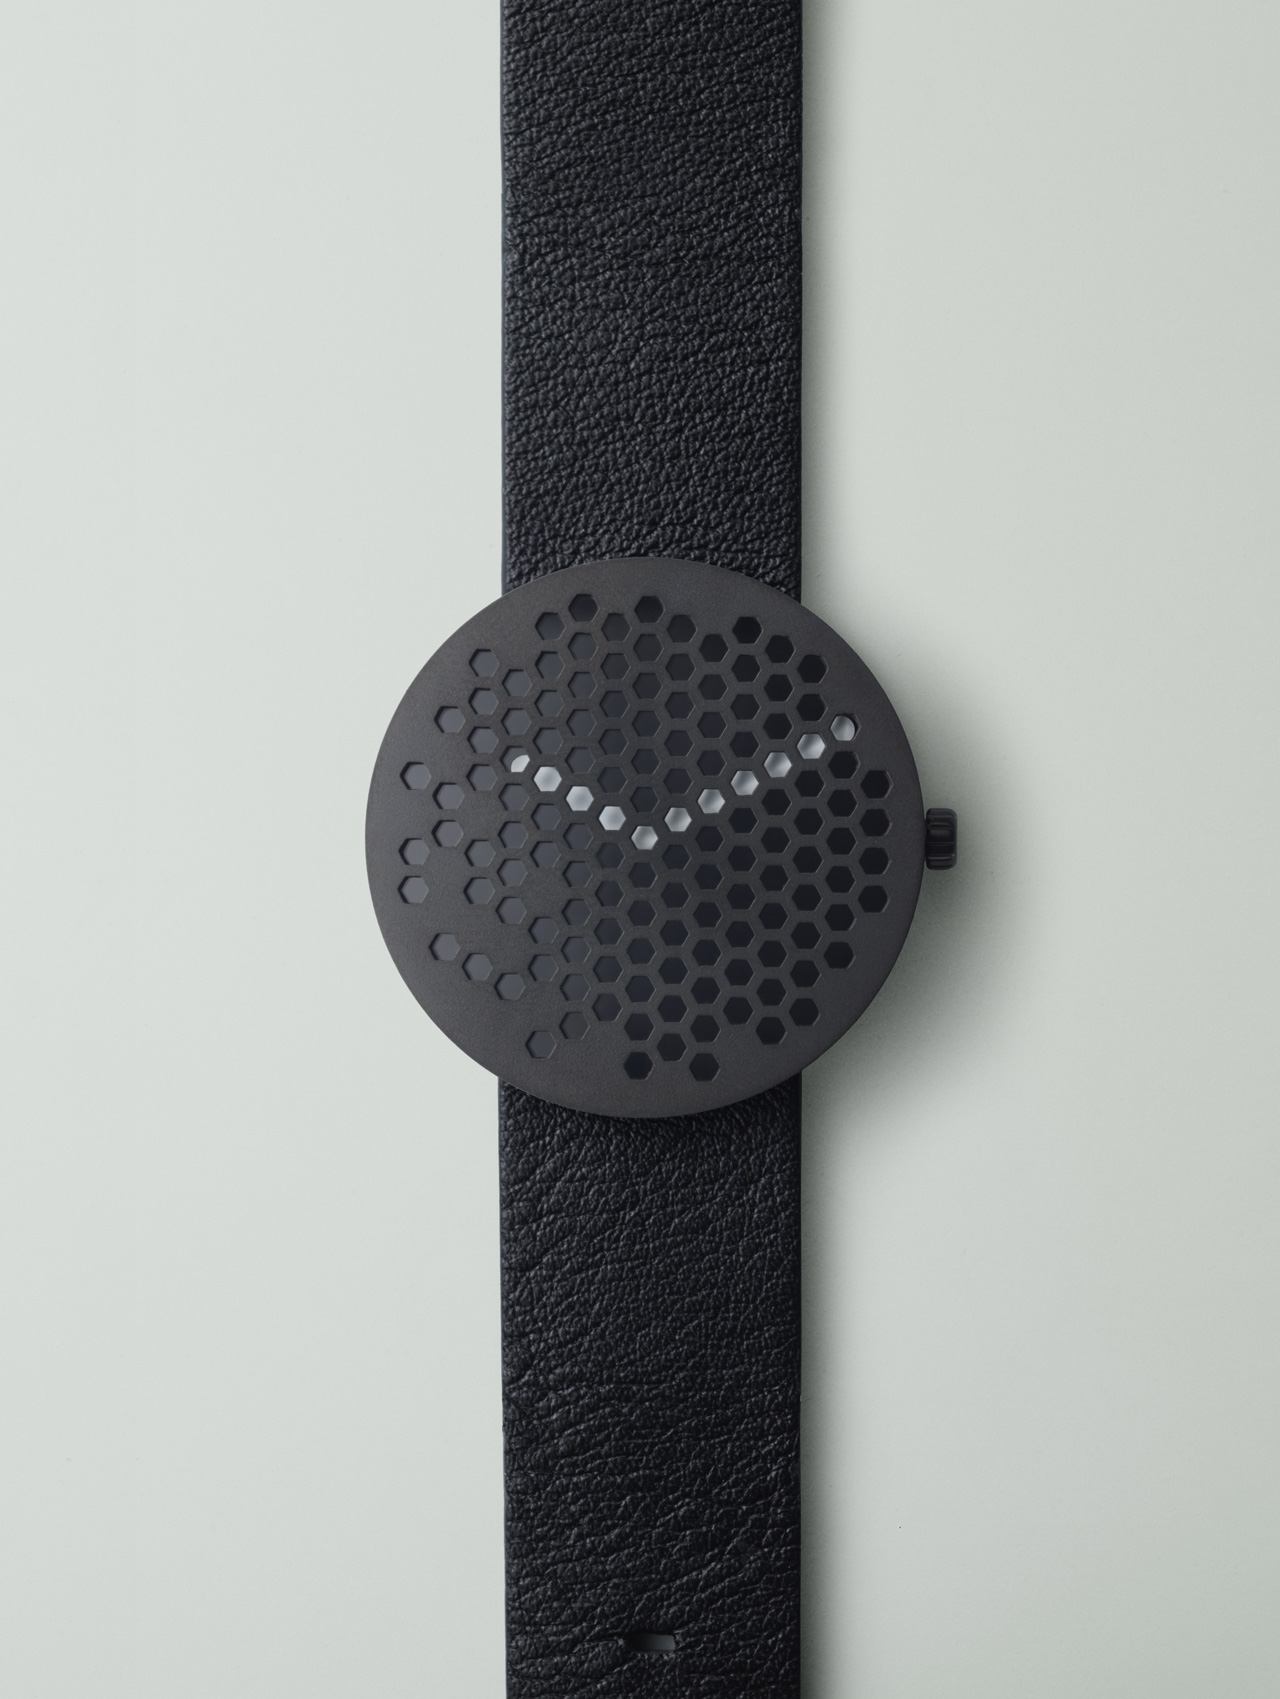 Alexander Lervik's Bikupa watch, created for his own design brand Tingest.